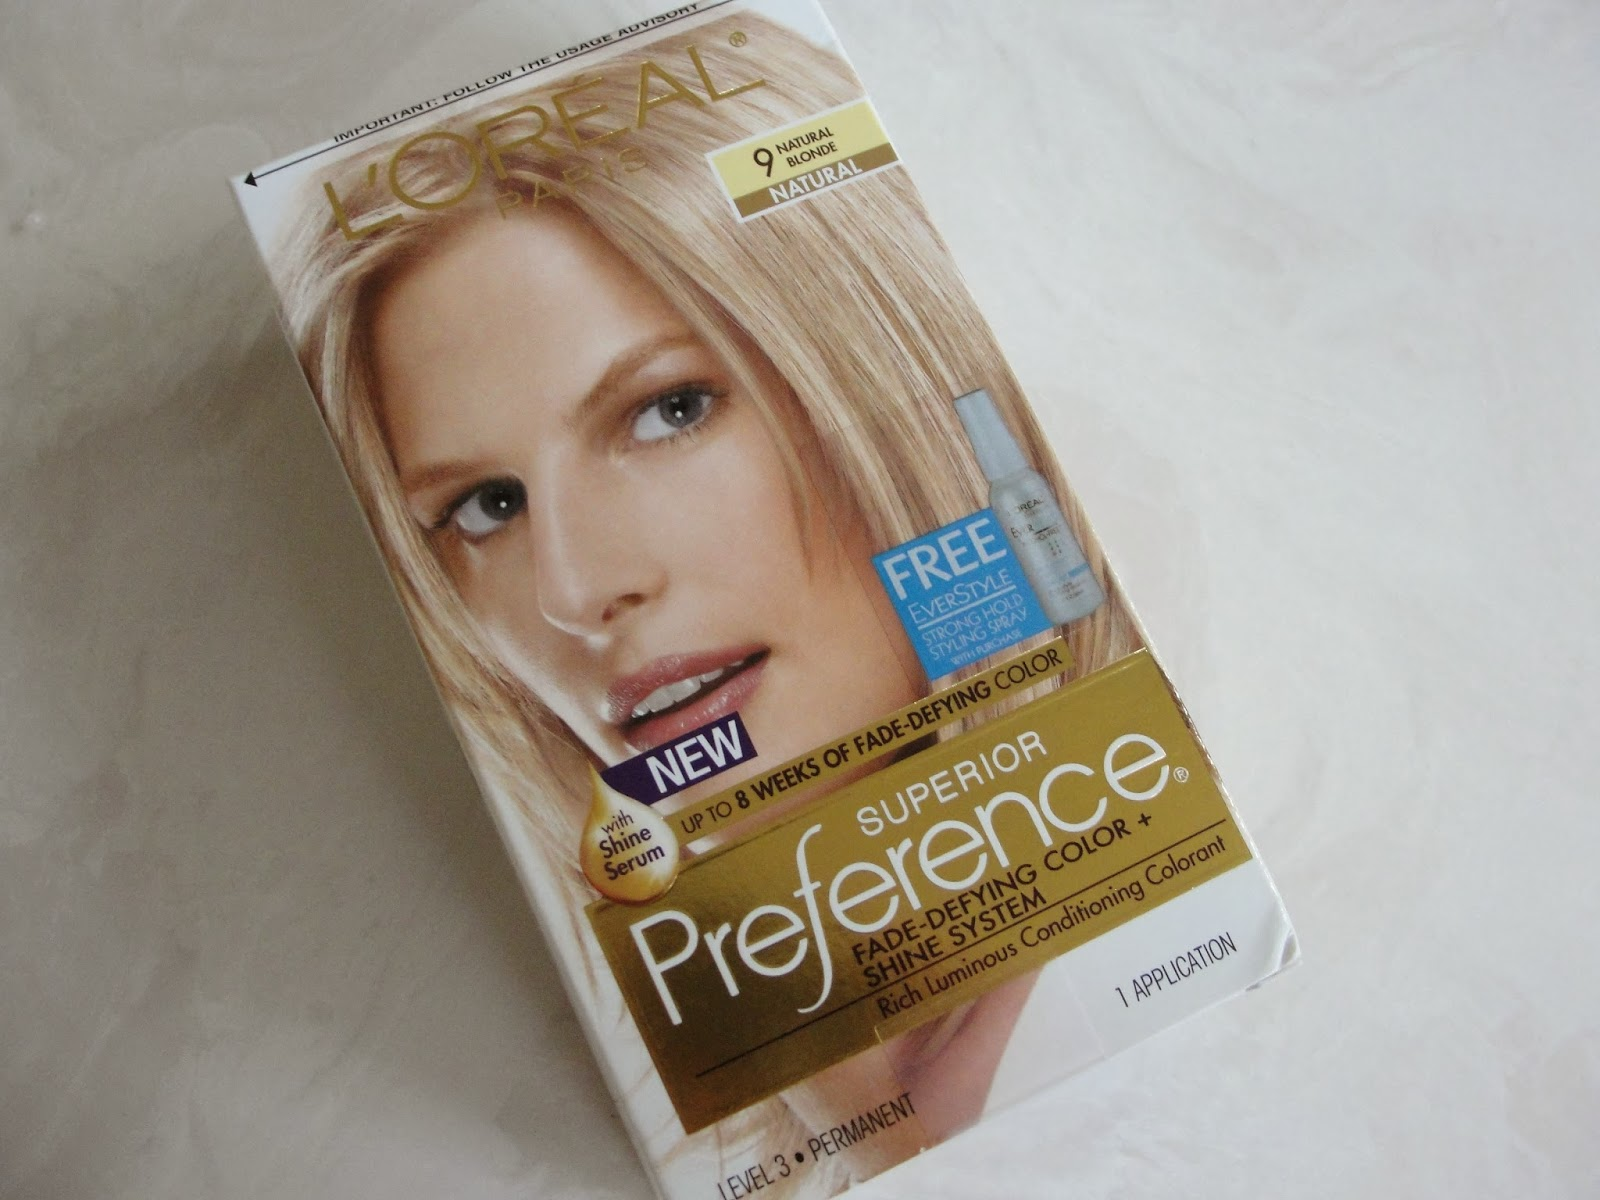 HOW TO GET A FREE LOREAL HAIR COLOR BOX